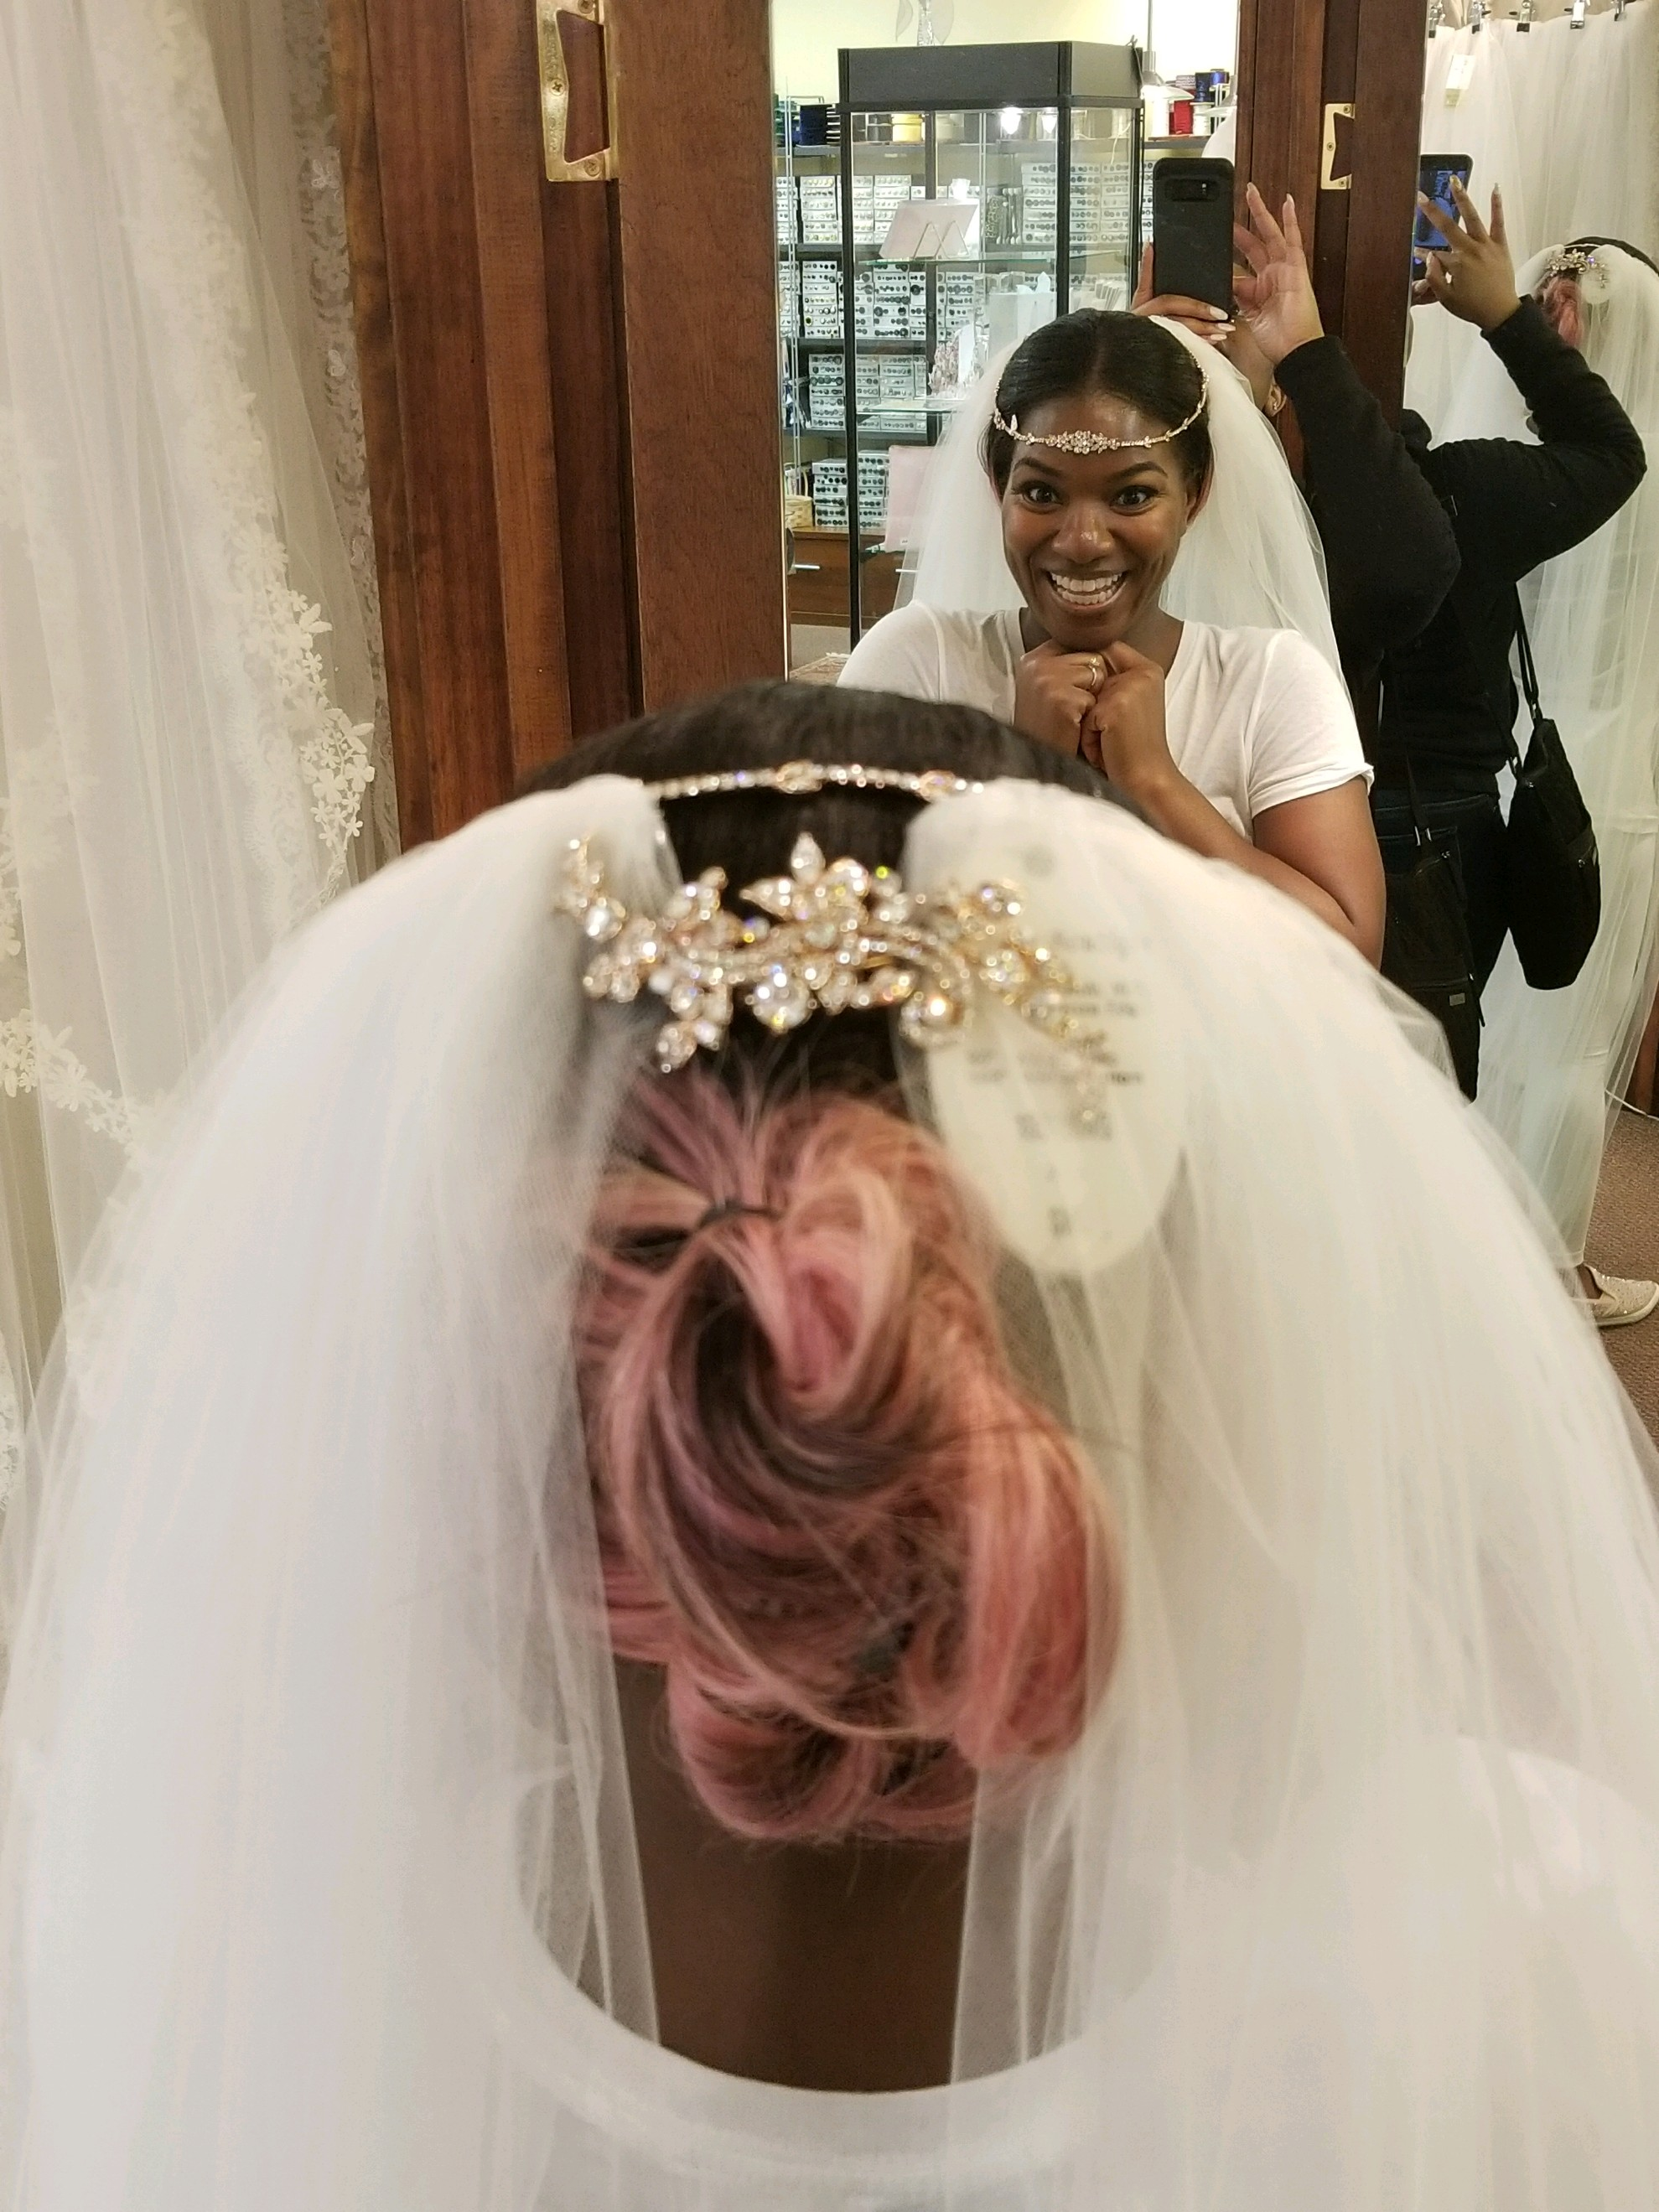 Black Destination Bride - BlackDesti Wedding Journal - Bridefriends Podcast -16 Headpiece 2 veils yes 6.JPG